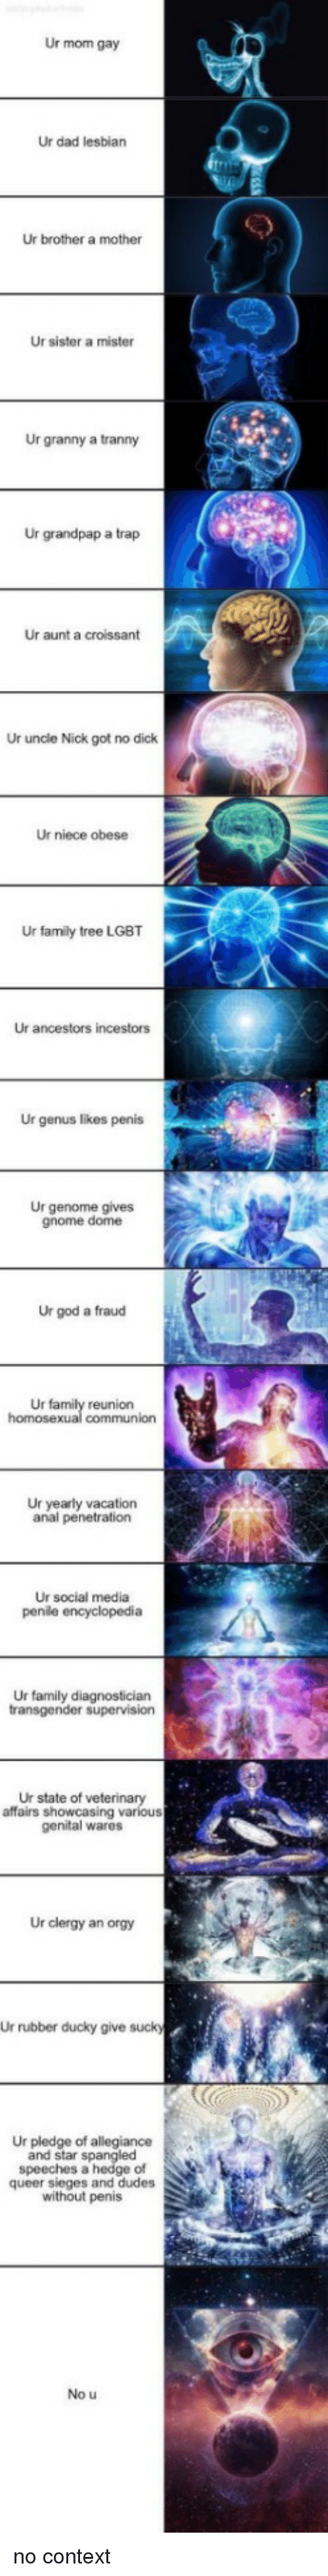 Penetration: Ur mom gay  Ur dad lesbian  Ur brother a mother  Ur sister a mister  Ur granny a tranny  Ur grandpap a trap  Ur aunt a croissant  Ur uncle Nick got no dick  Ur niece obese  Ur family tree LGBT  Ur ancestors incestors  Ur genus likes penis  Ur genome gives  gnome dome  Ur god a fraud  Ur  reunion  Ur yearly vacation  anal penetration  Ur social media  Ur family diagnostician  Ur state of veterinary  affairs showcasing various  genital wares  Ur clergy an orgy  Ur rubber ducky give suck  Ur pledge of allegiance  and star spangled  speeches a hedge of  queer sieges and dudes  without penis  No u no context